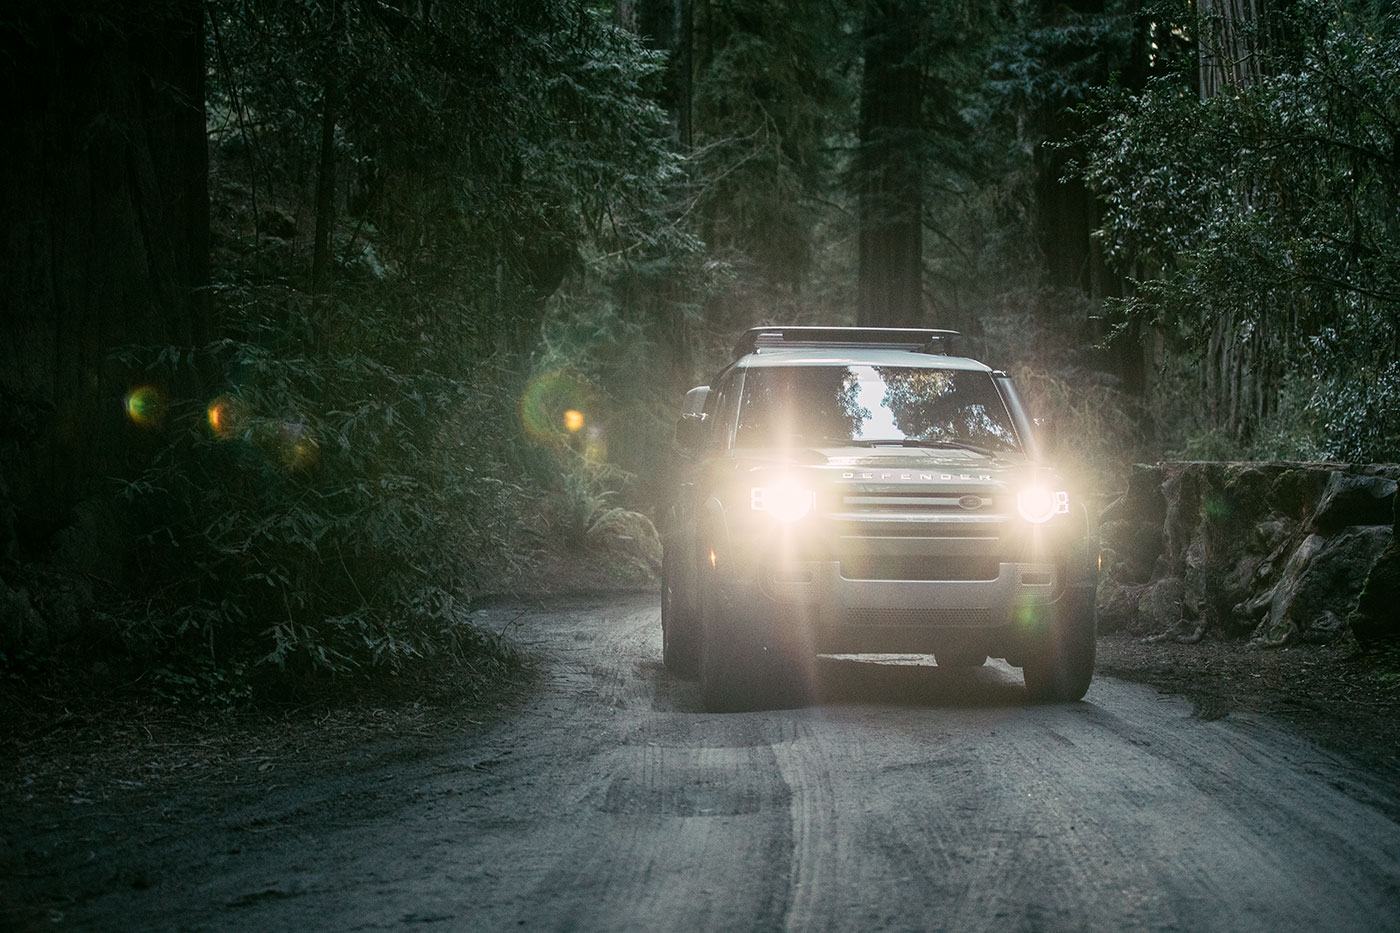 The new 2020 Land Rover Defender 110 in Jedediah Smith Redwoods State Park in Northern California